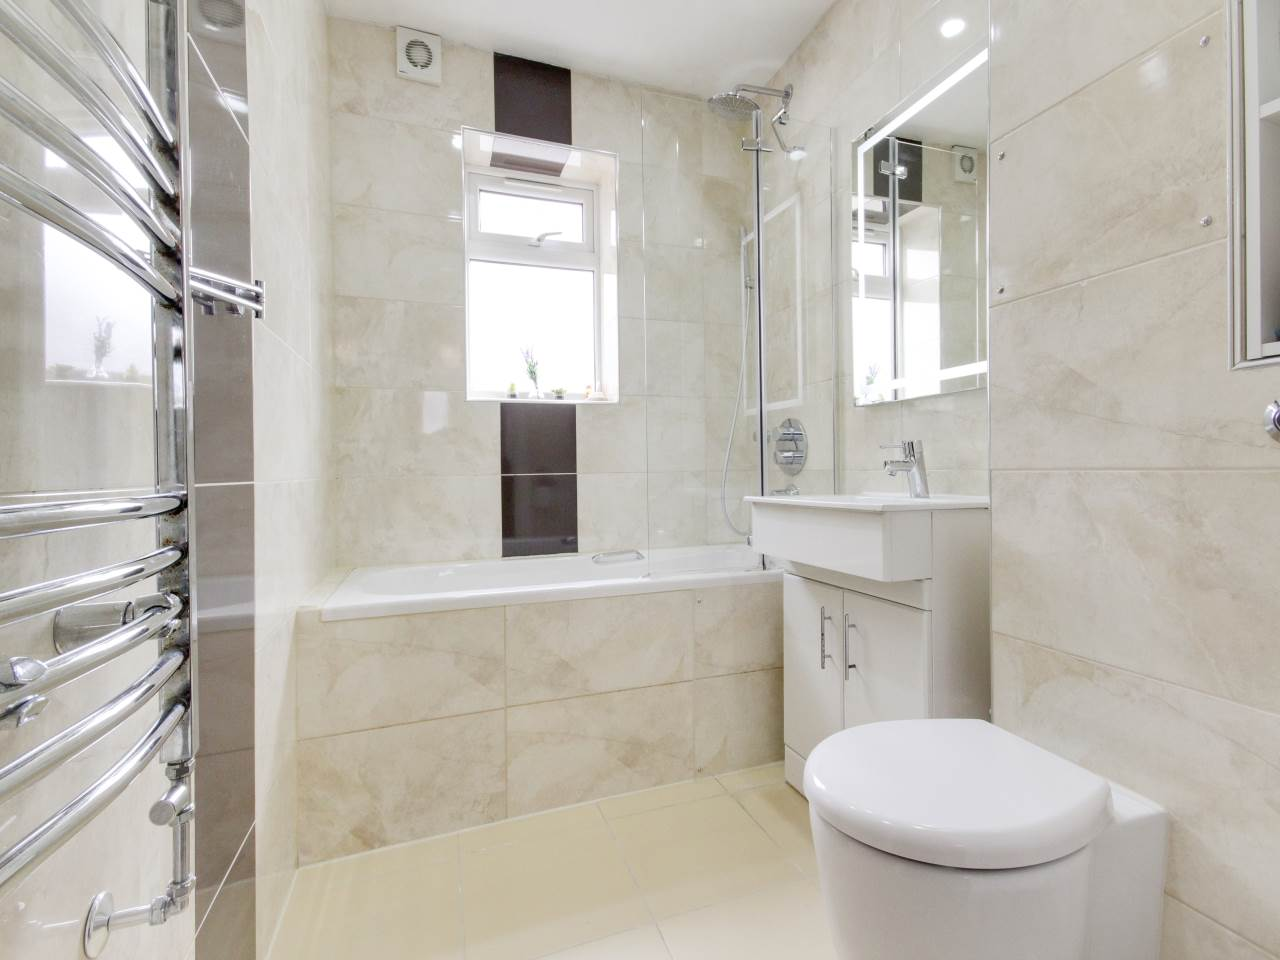 2 bed flat for sale in Wanti Terrace , Chigwell   - Property Image 2